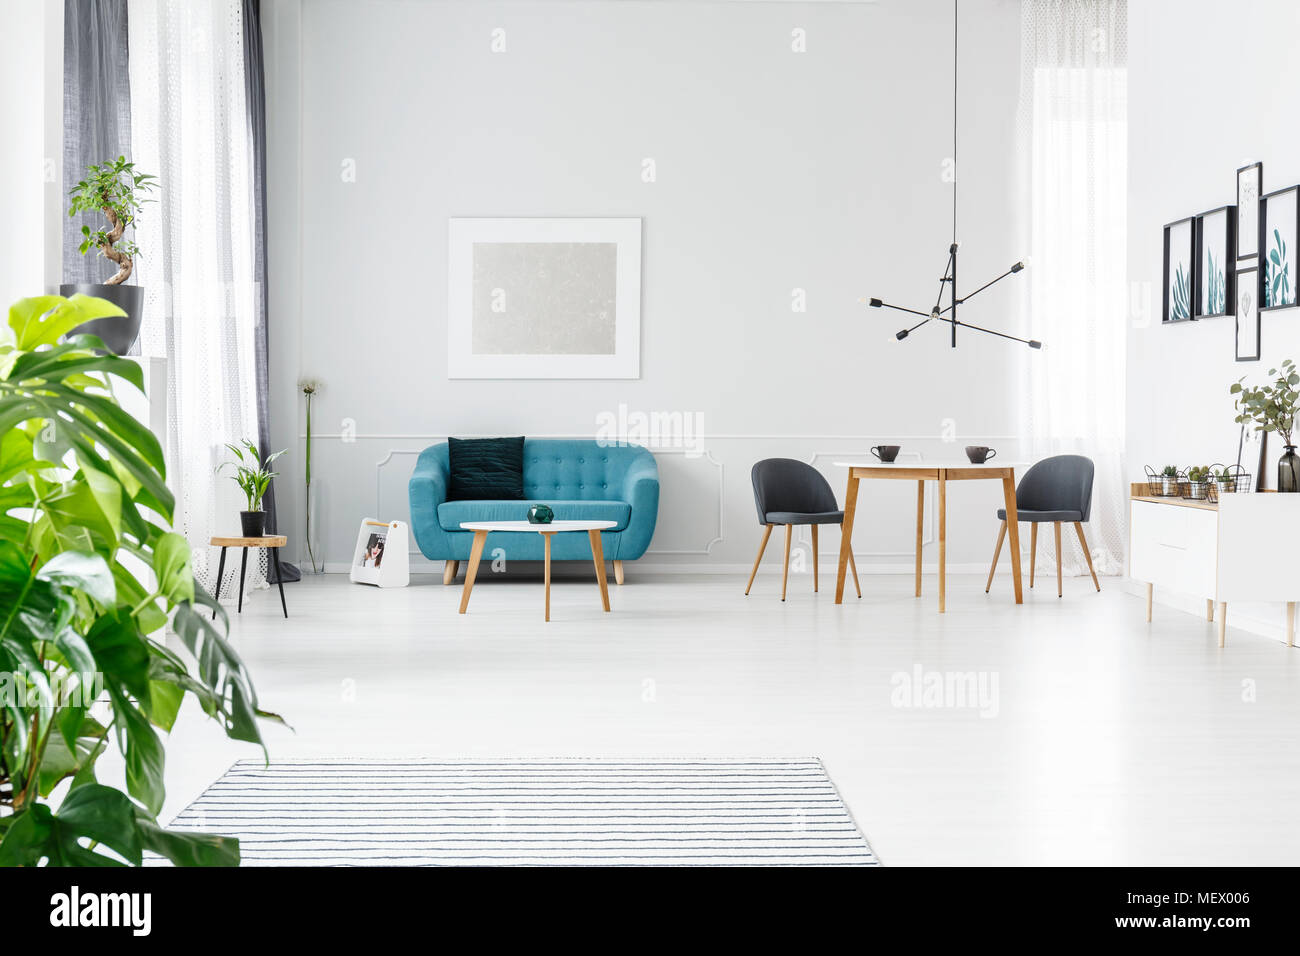 https www alamy com bright spacious and elegant flat for sale with posters coffee cups on wooden table and turquoise couch image181279622 html